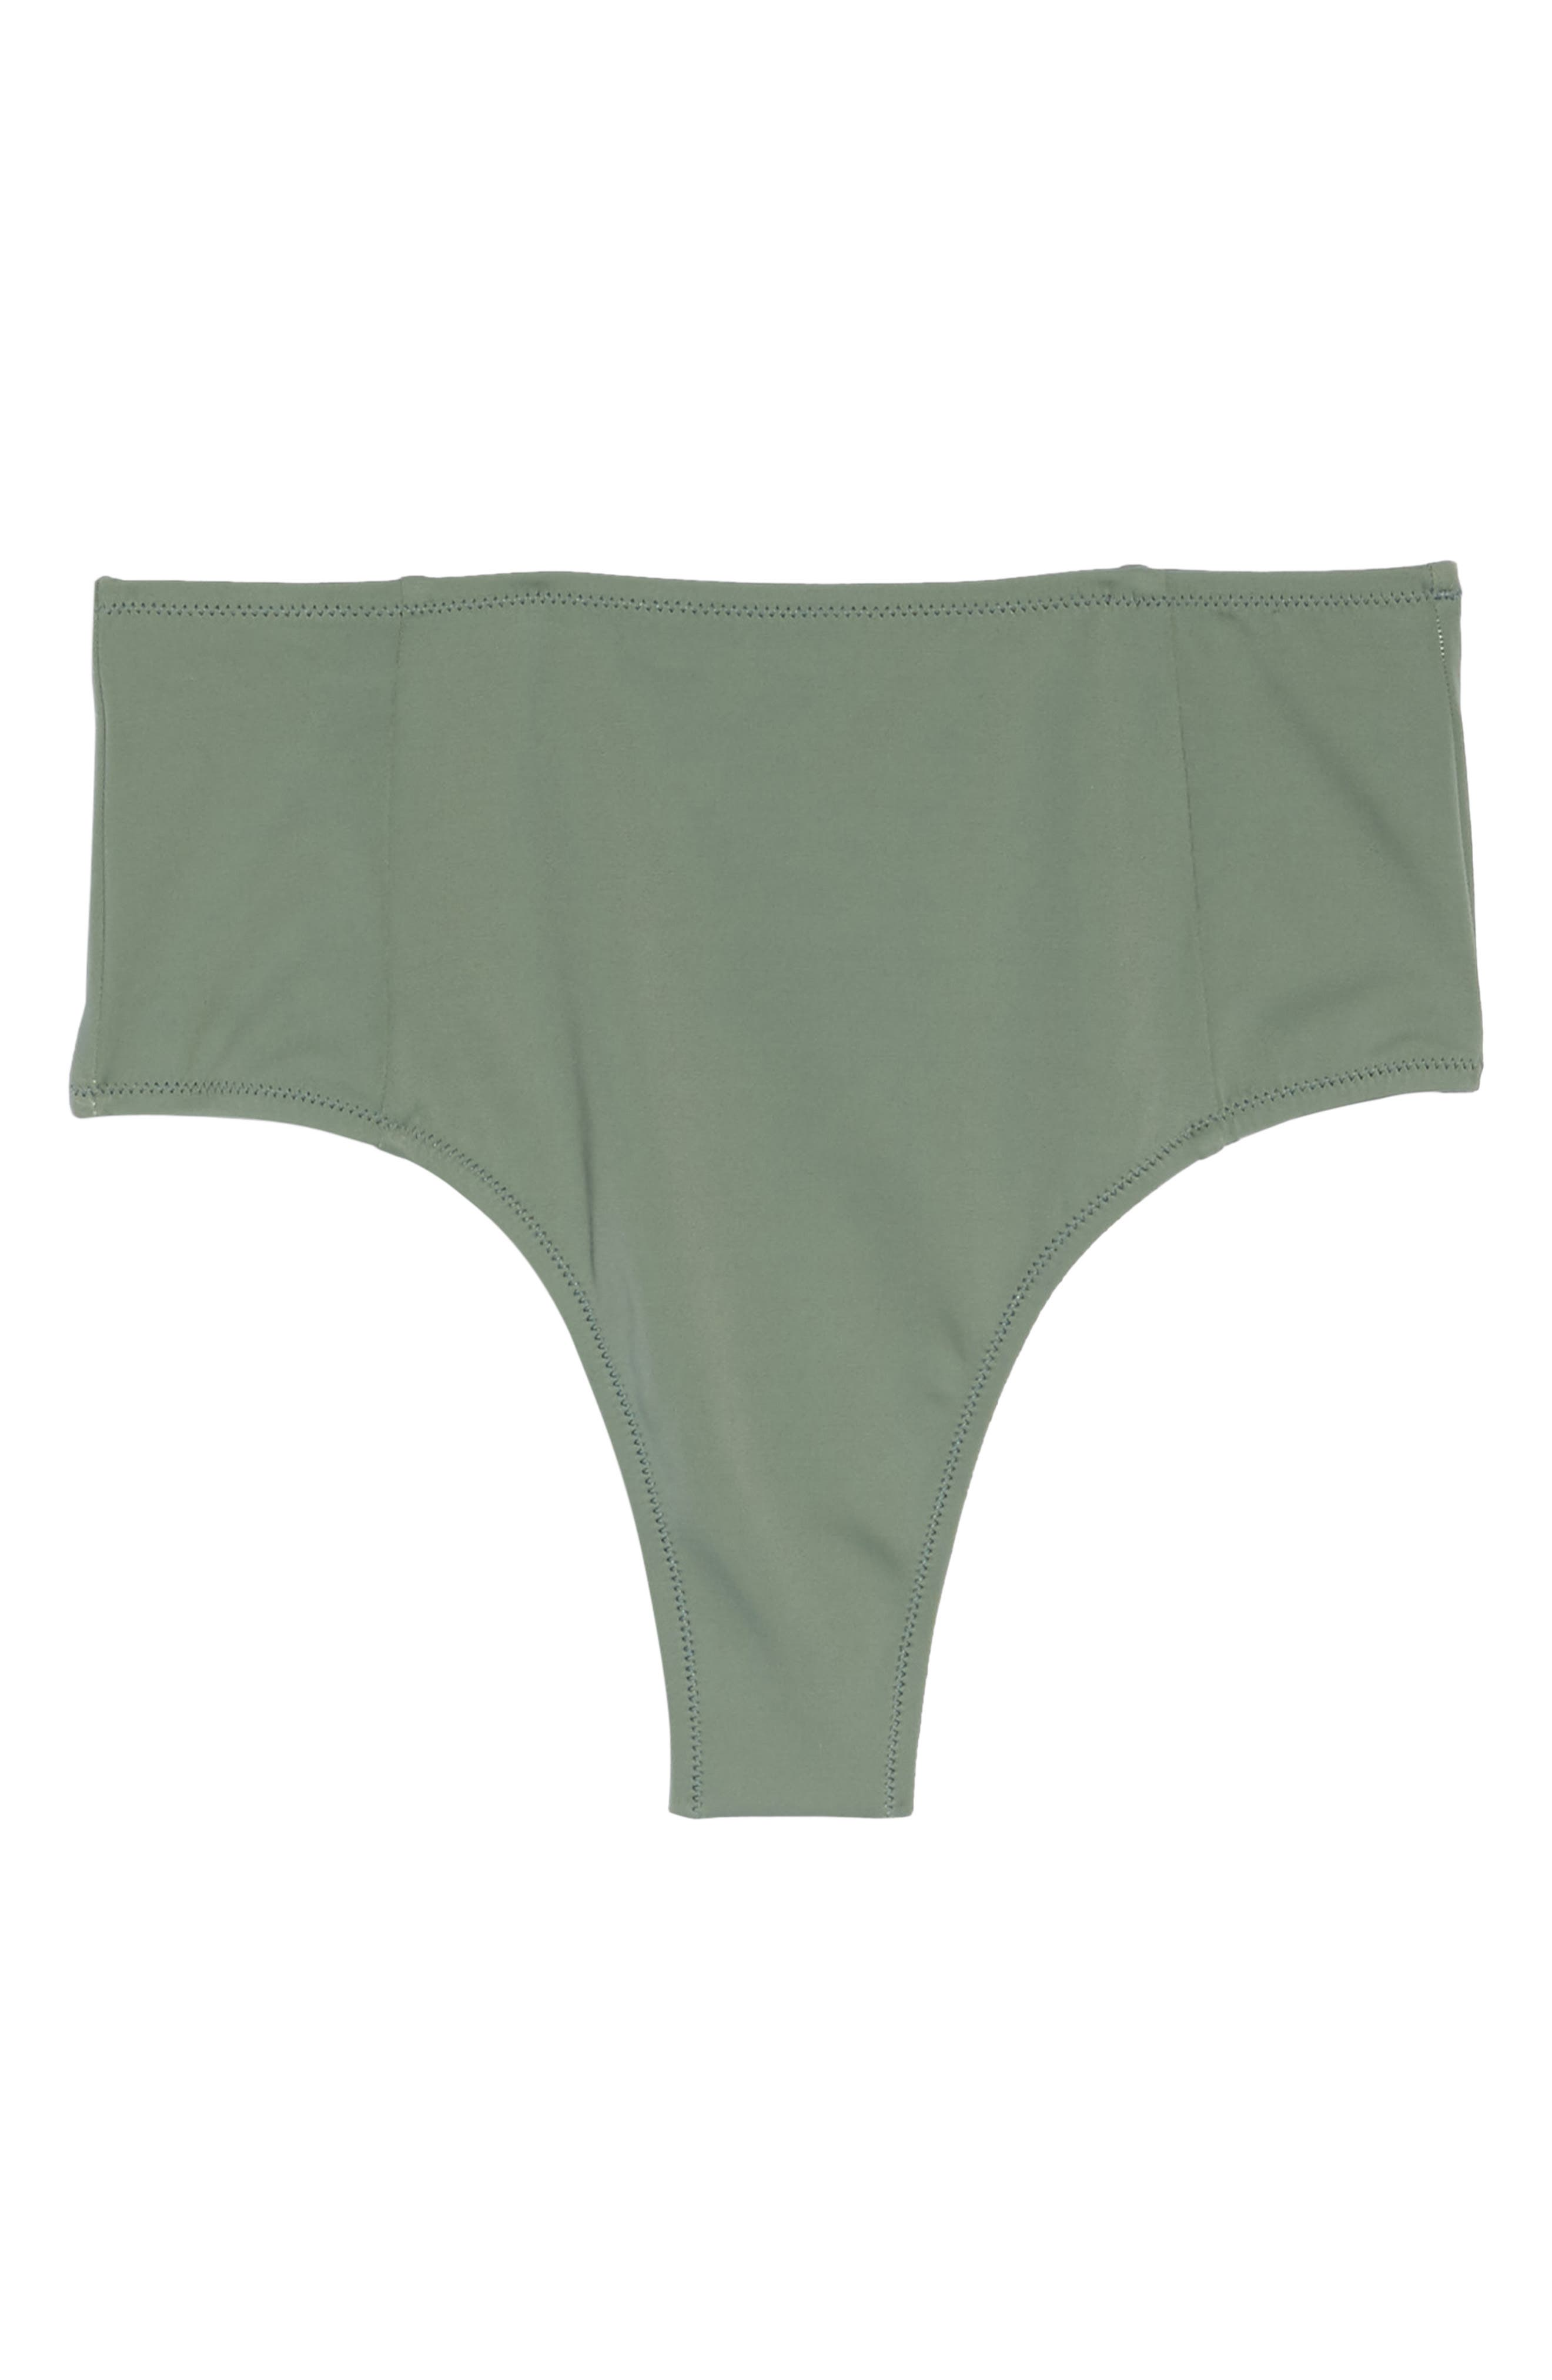 SOLID & STRIPED,                             The Jessica High Waist Bikini Bottoms,                             Alternate thumbnail 6, color,                             339